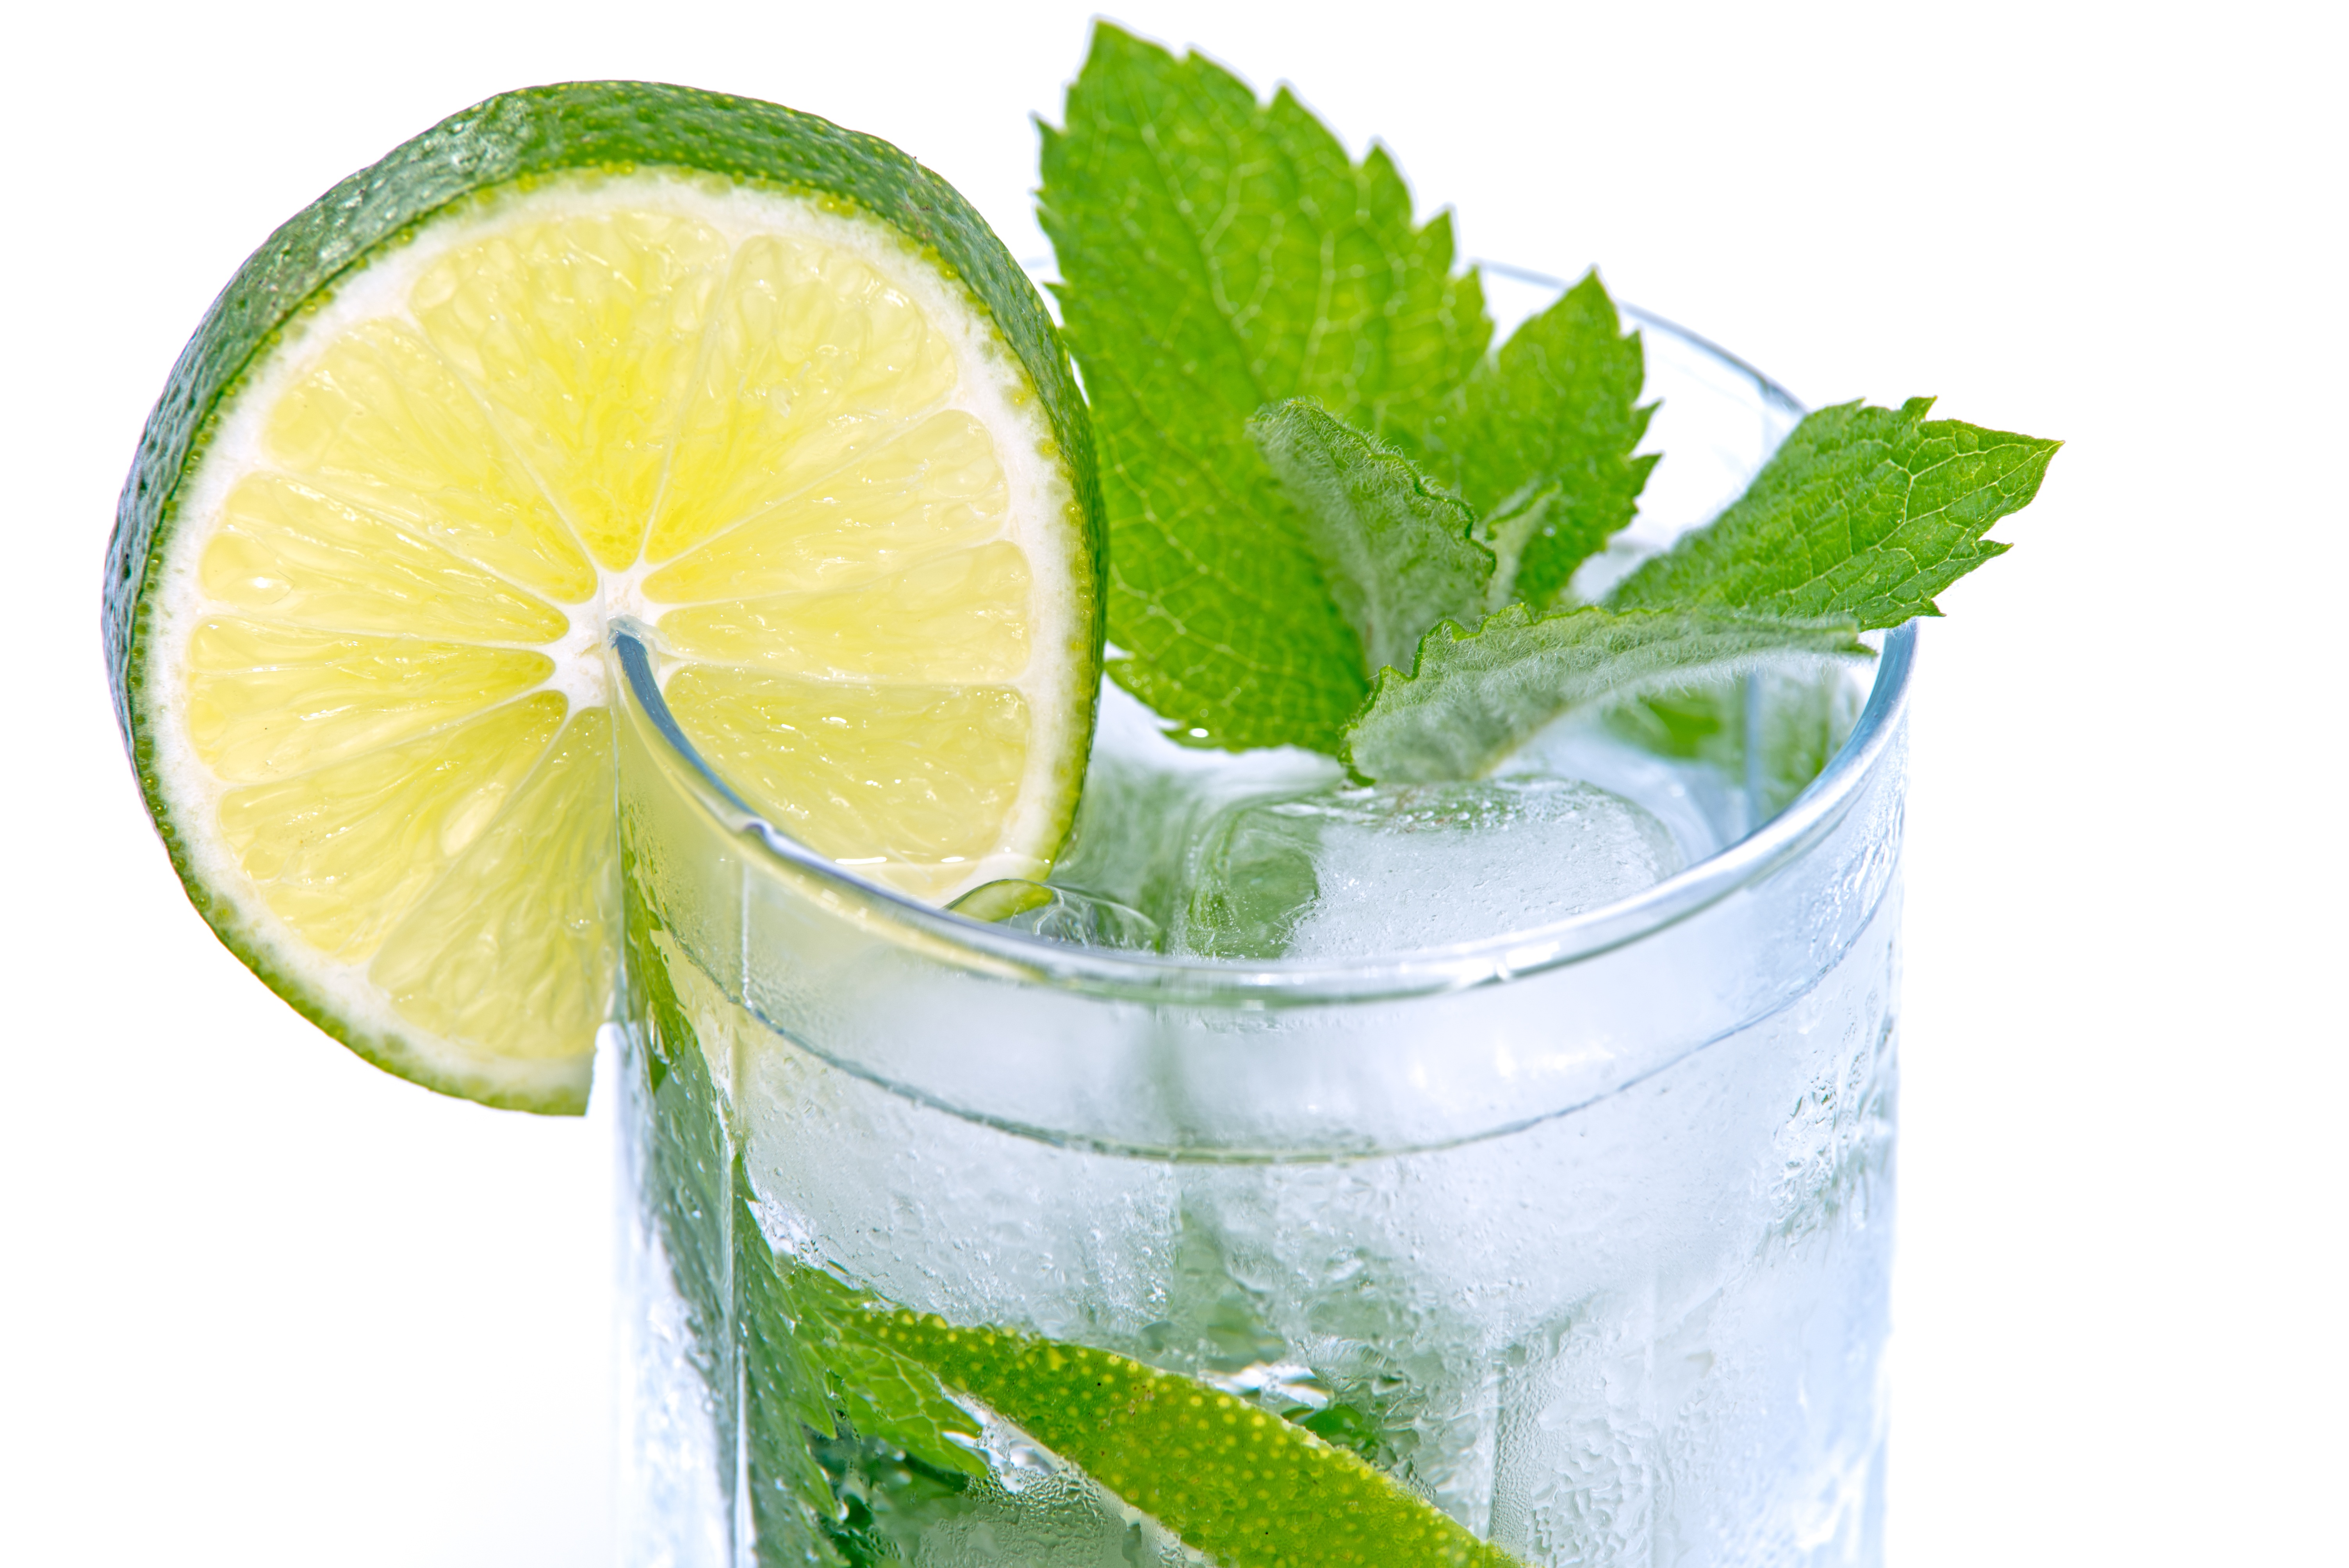 Water with Lime and Mint in it for Hydration